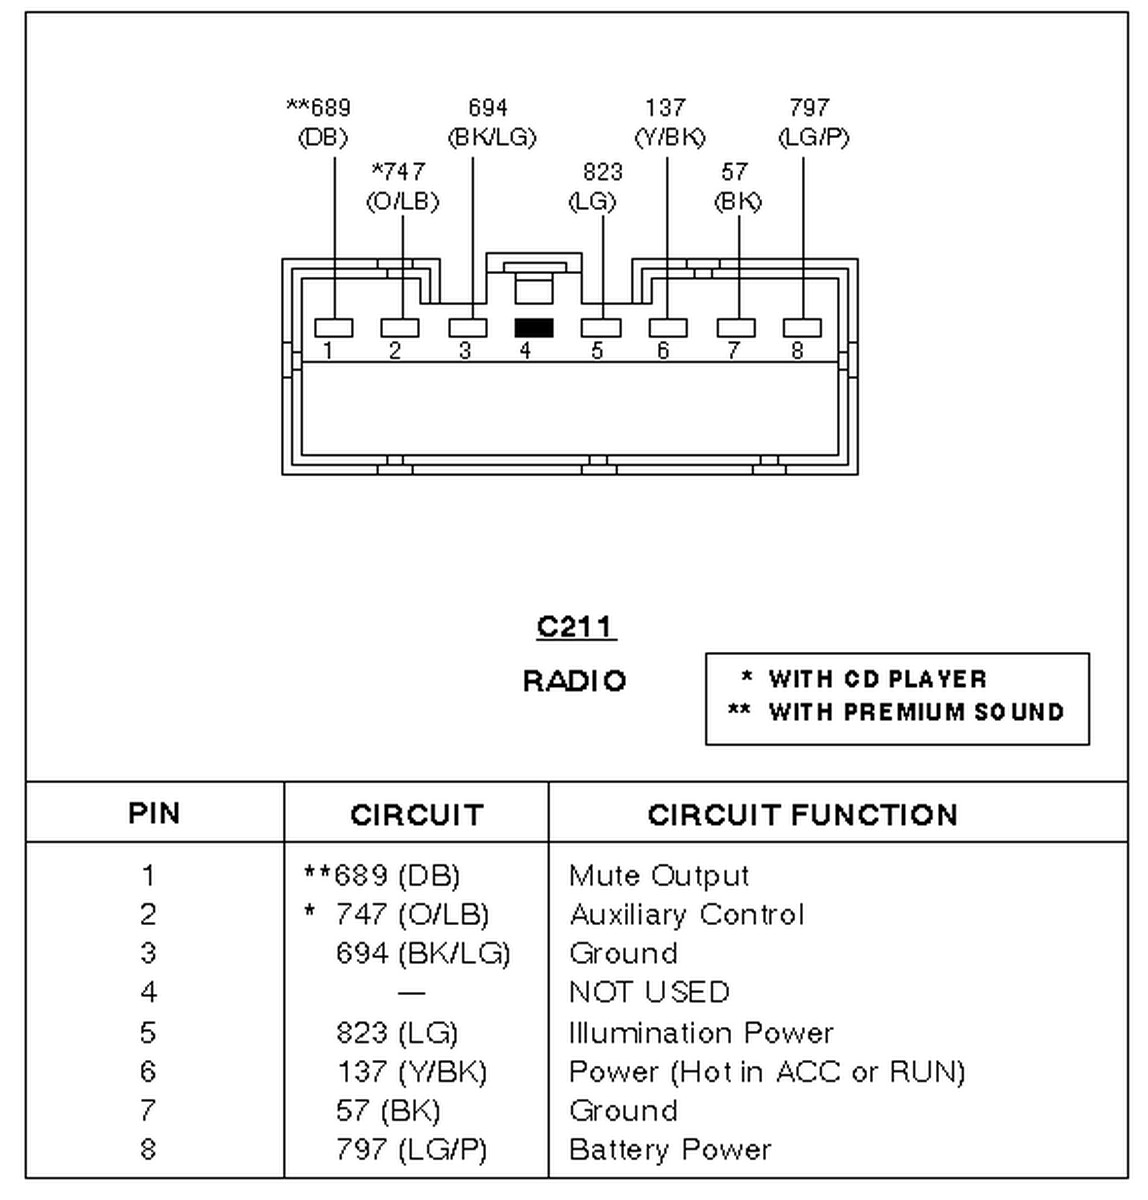 hight resolution of 2011 ford escape radio wiring diagram 92 ford explorer radio wiring diagram gooddy org within